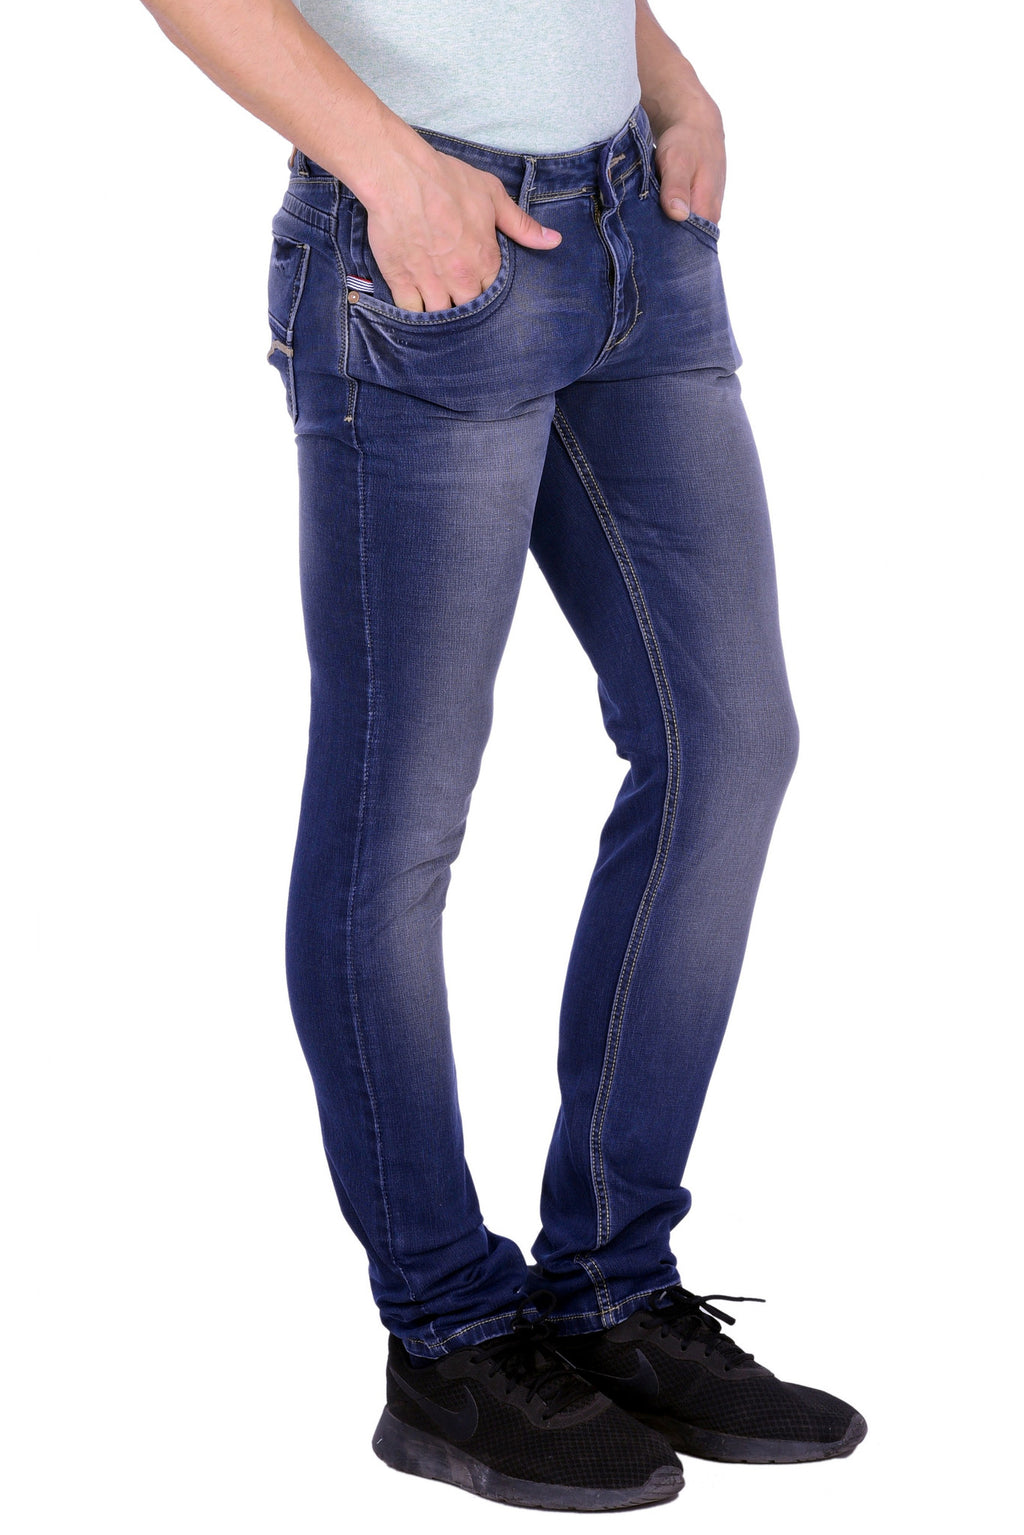 Drill Fit Trendy Denim JH614